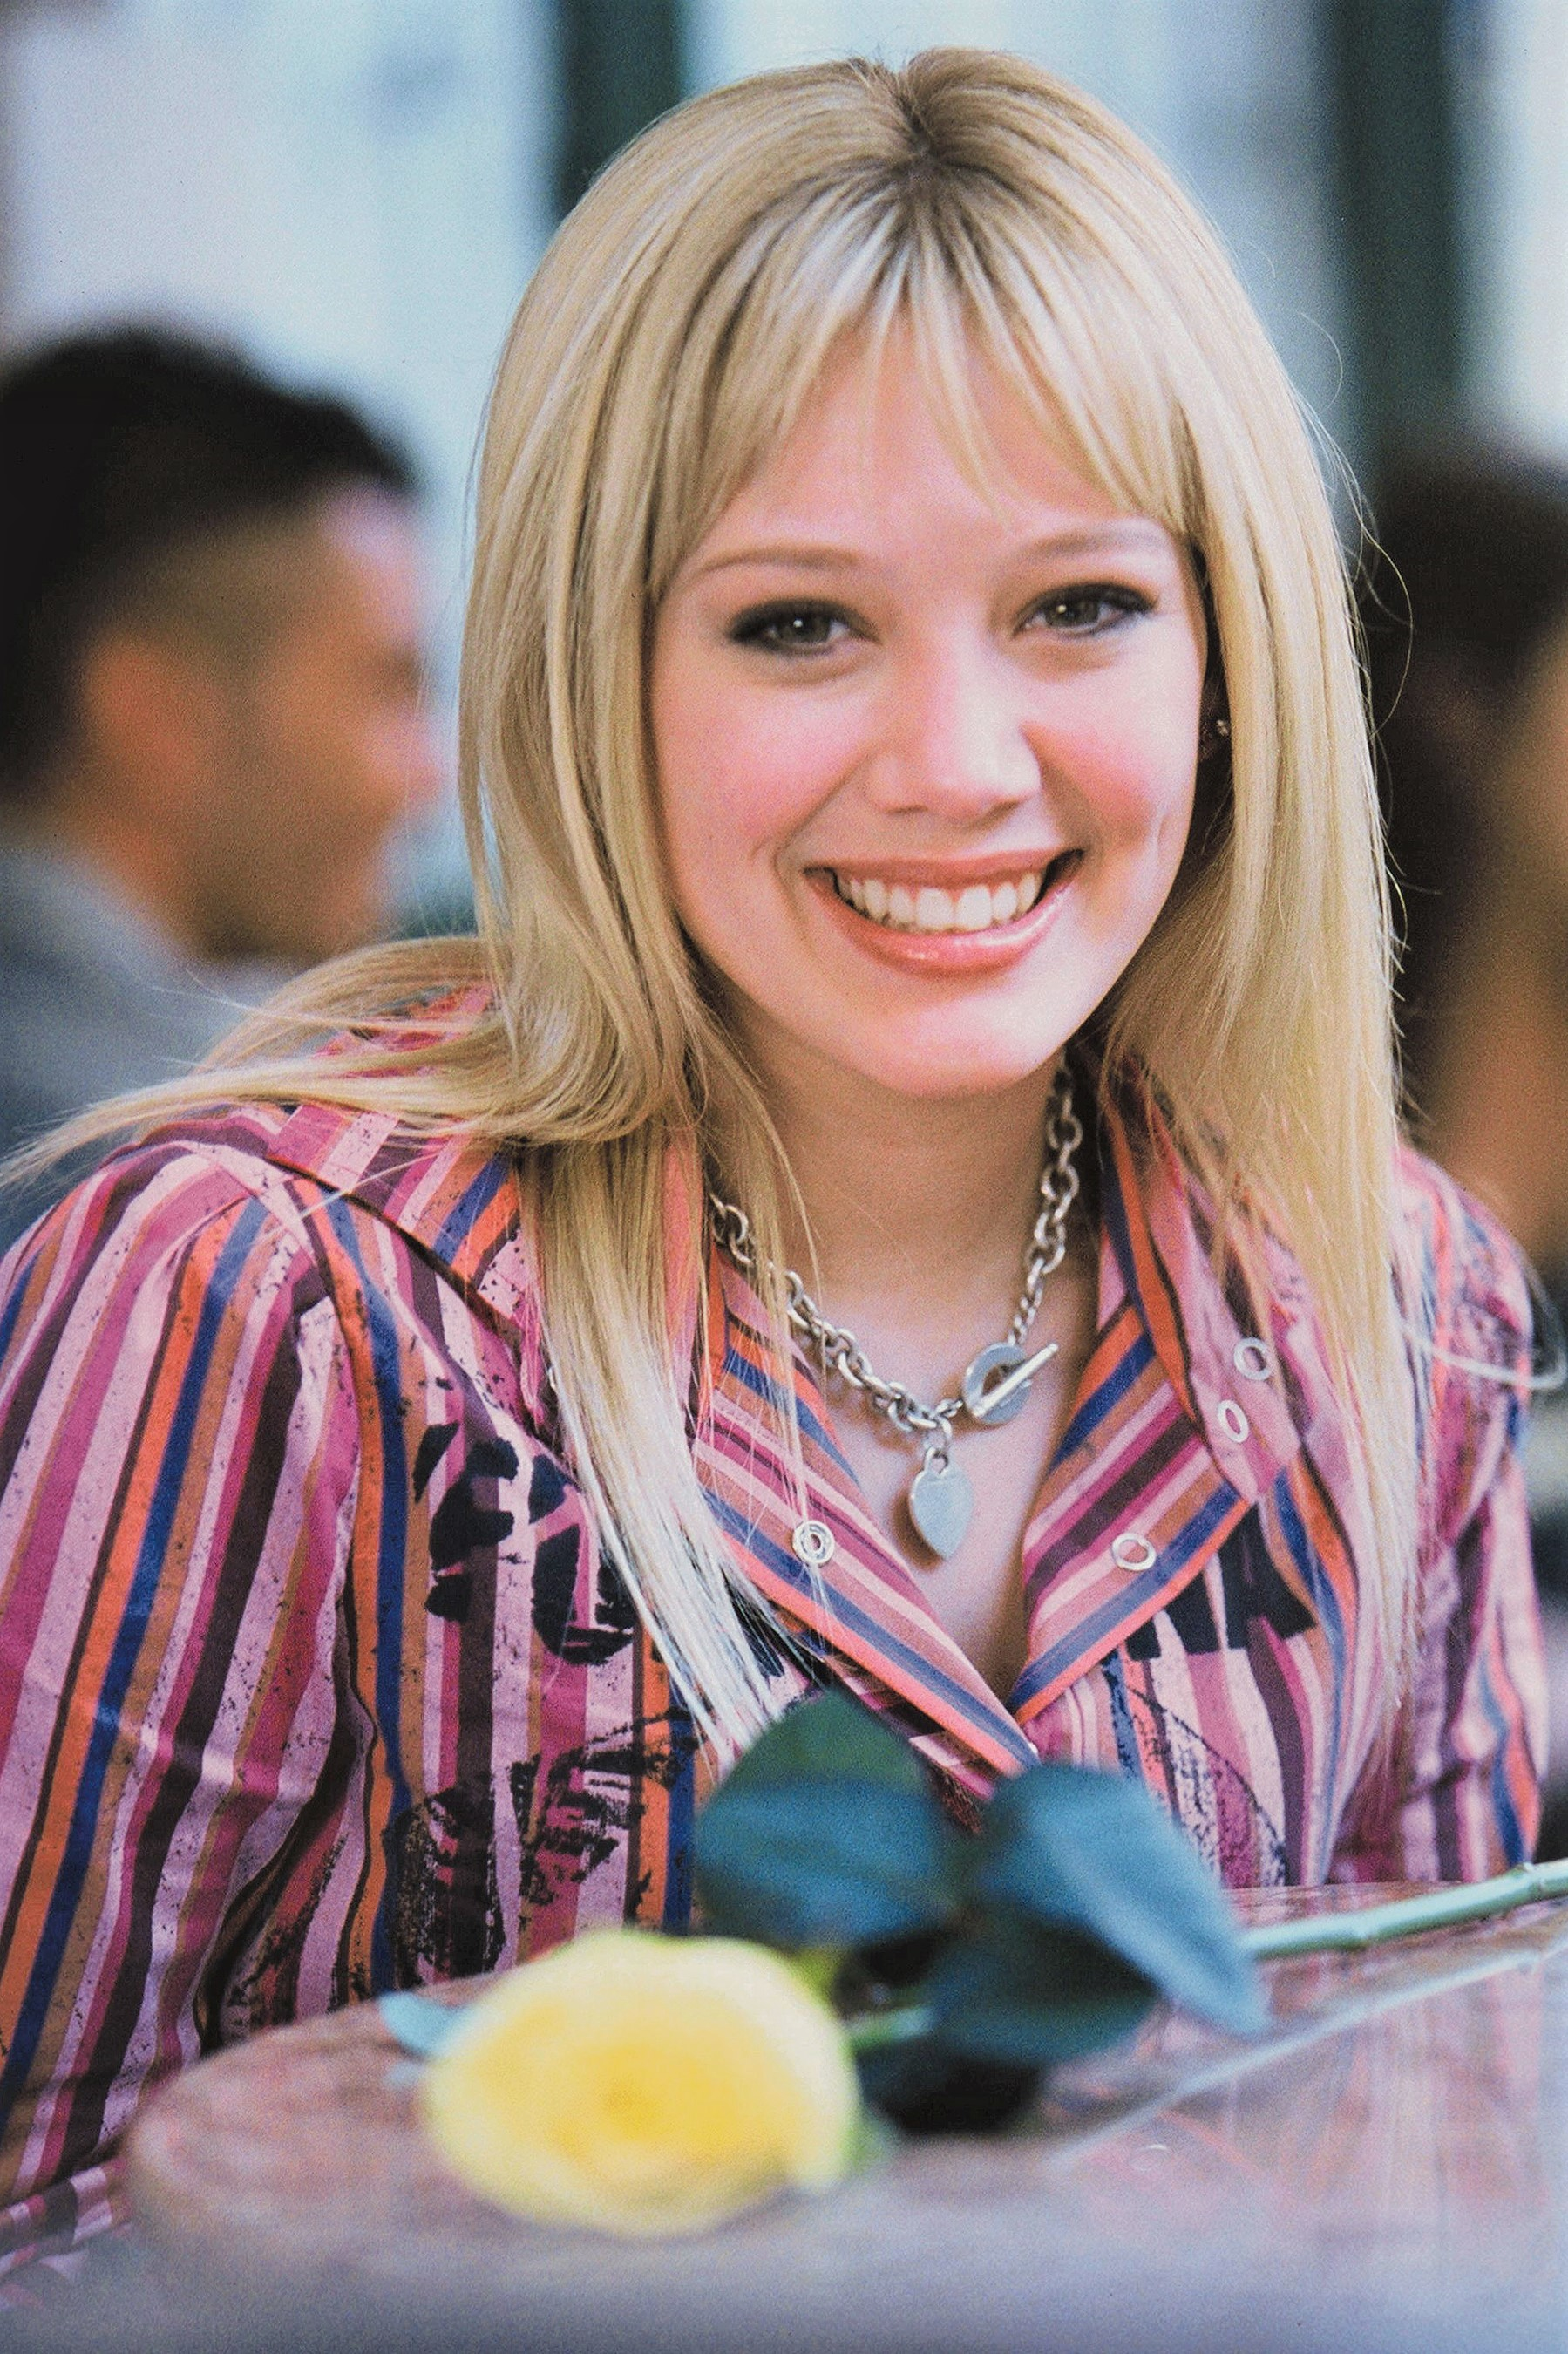 Hilary Duff to Star in Lizzie McGuire Reboot from Disney+